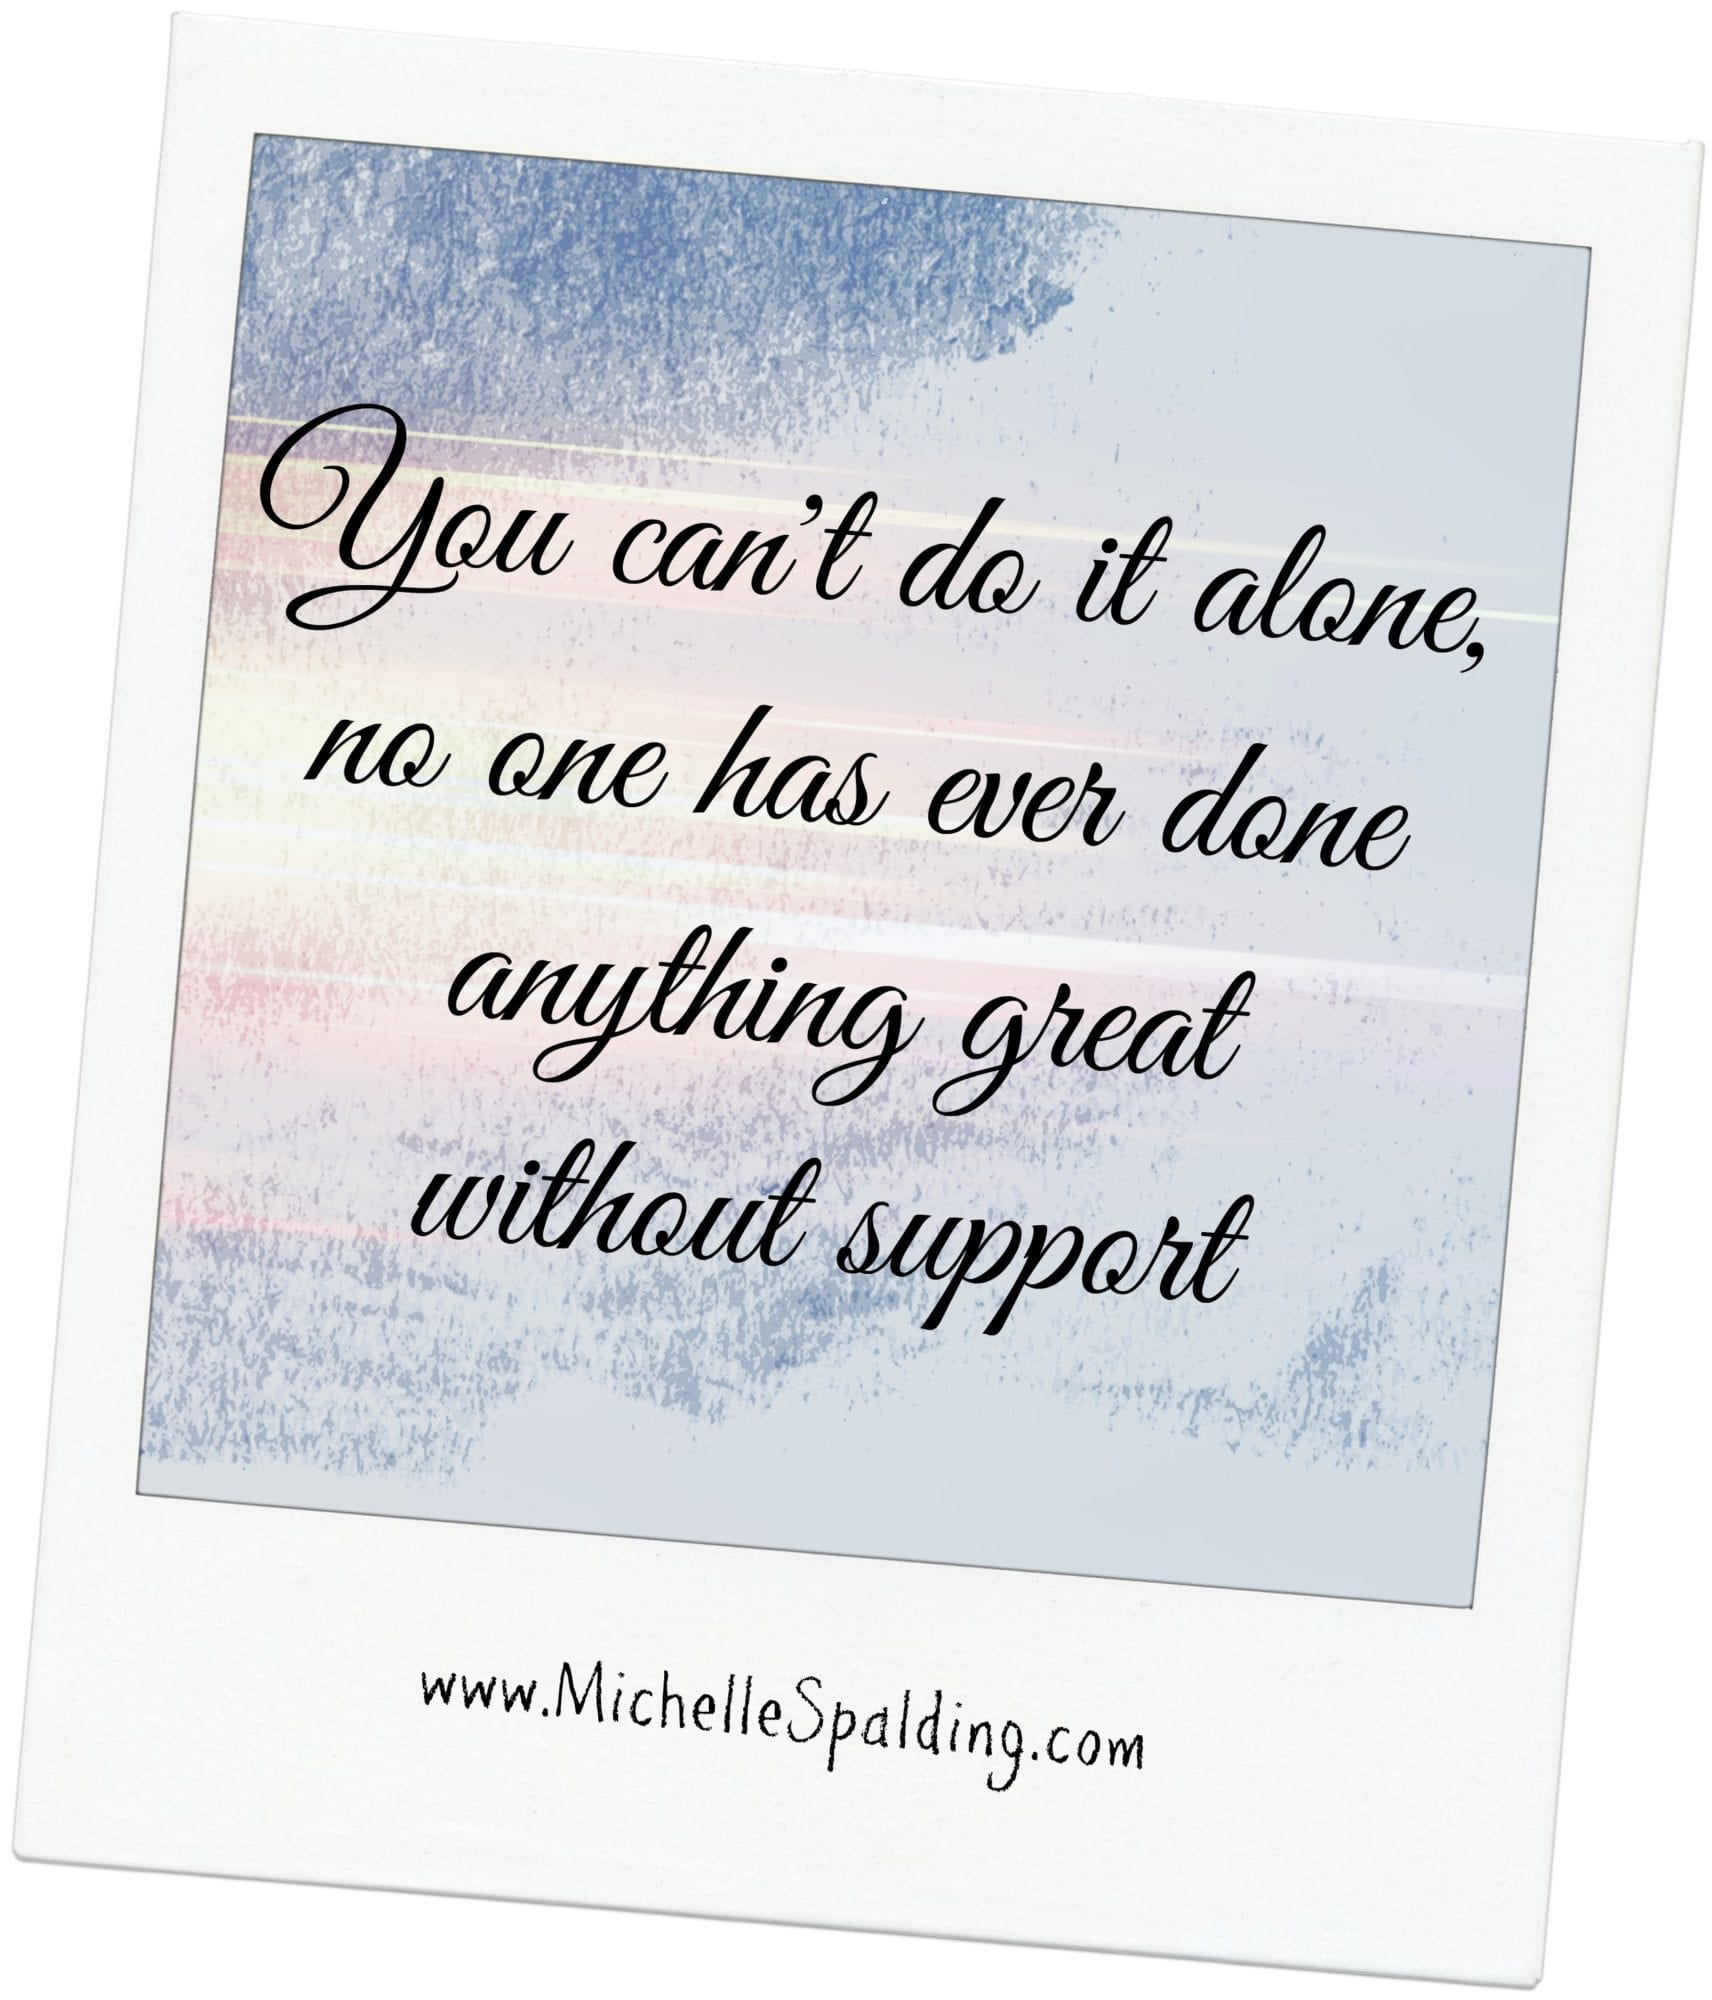 You can't do it alone, no one has ever done anything great without support